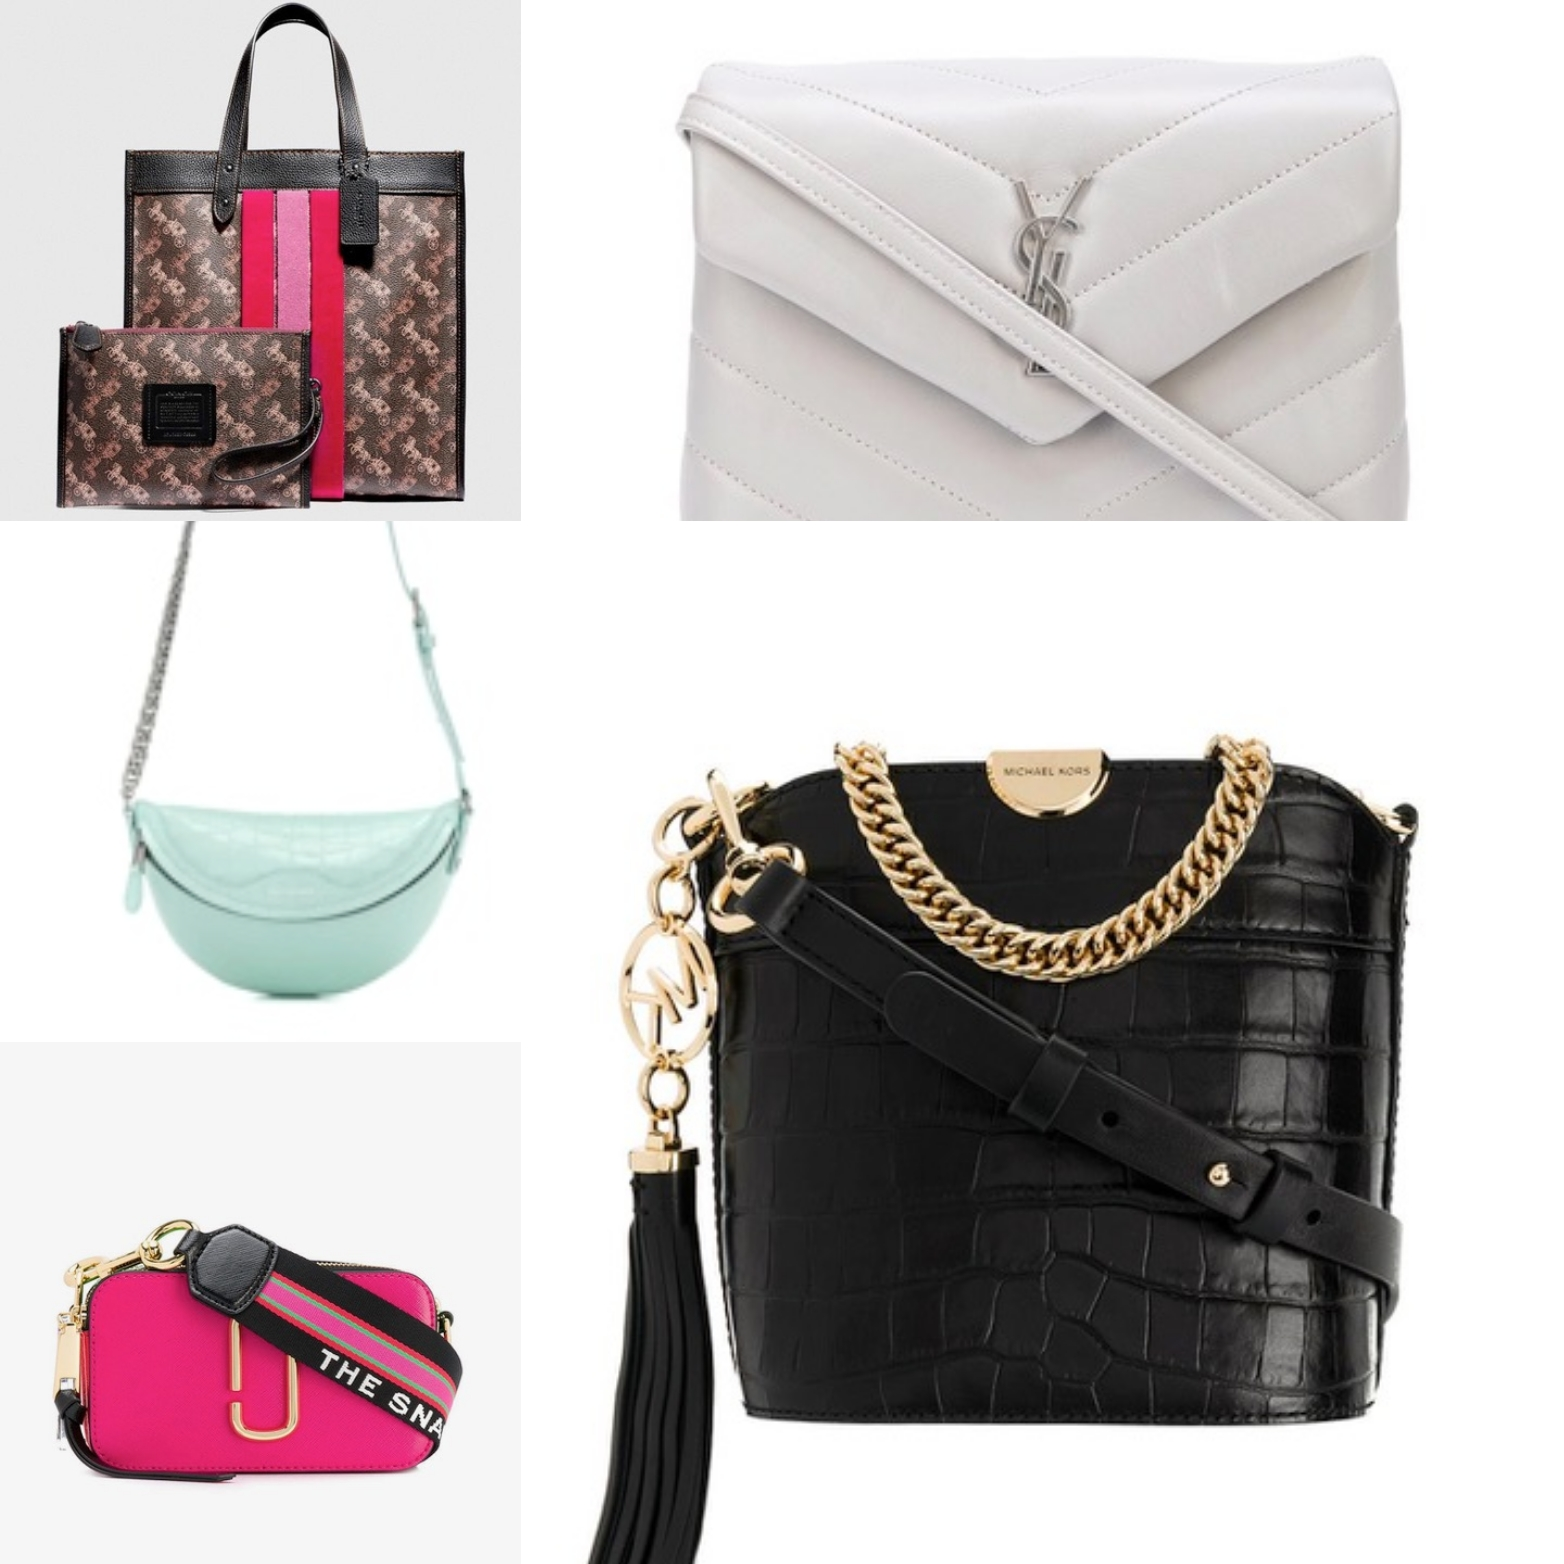 [:it]The must have bags of 2020! The most popular and on sale models[:]